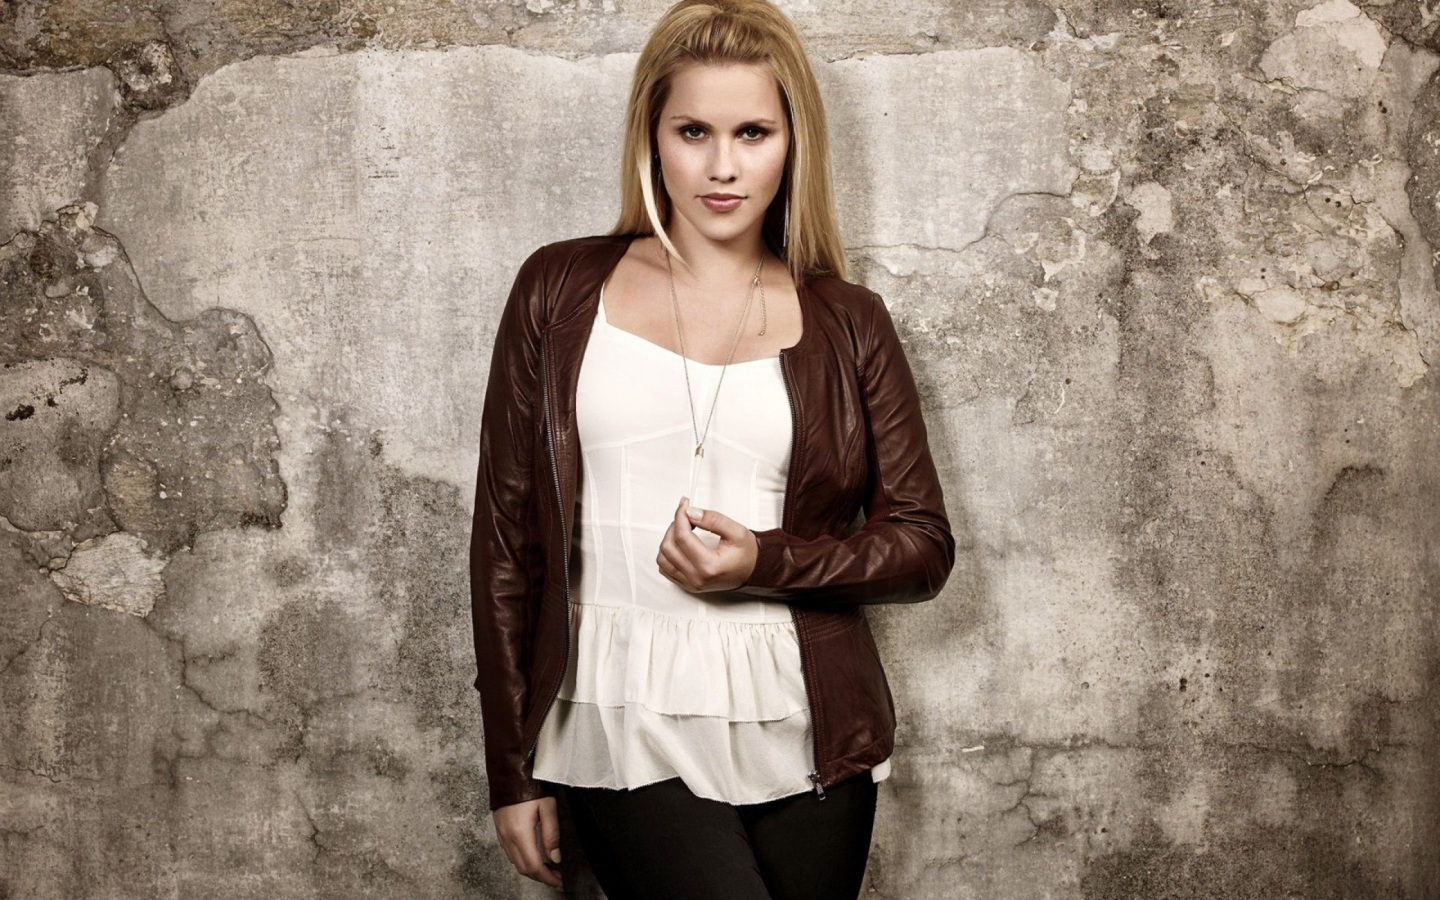 1440x900 - Claire Holt Wallpapers 21